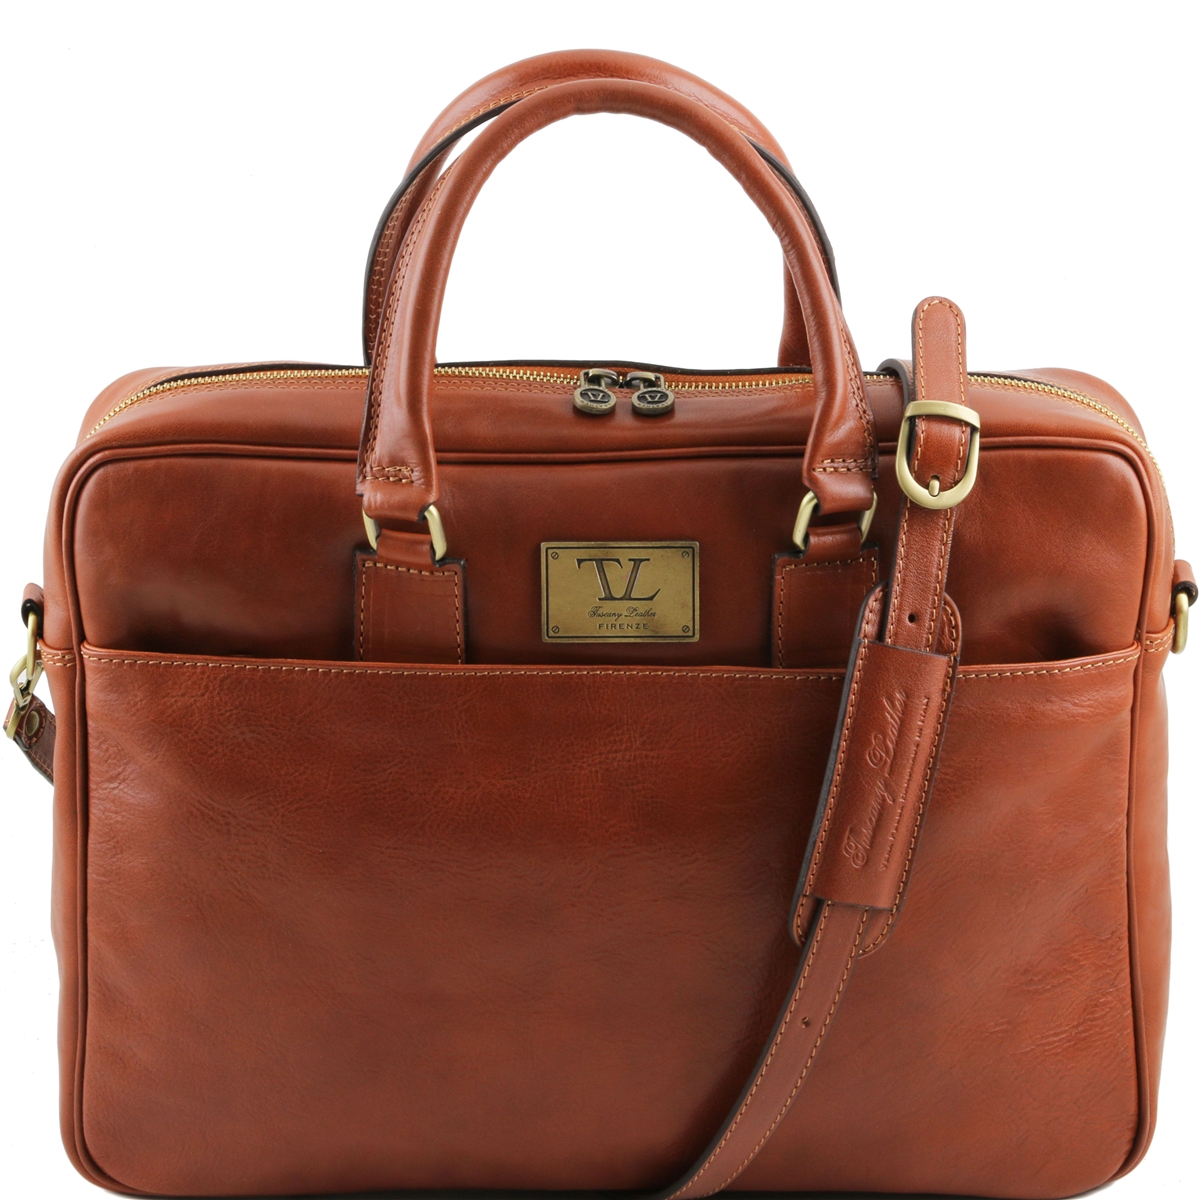 Urbino Laptop Bag - Men's Honey Leather Bag | Avalina Leather